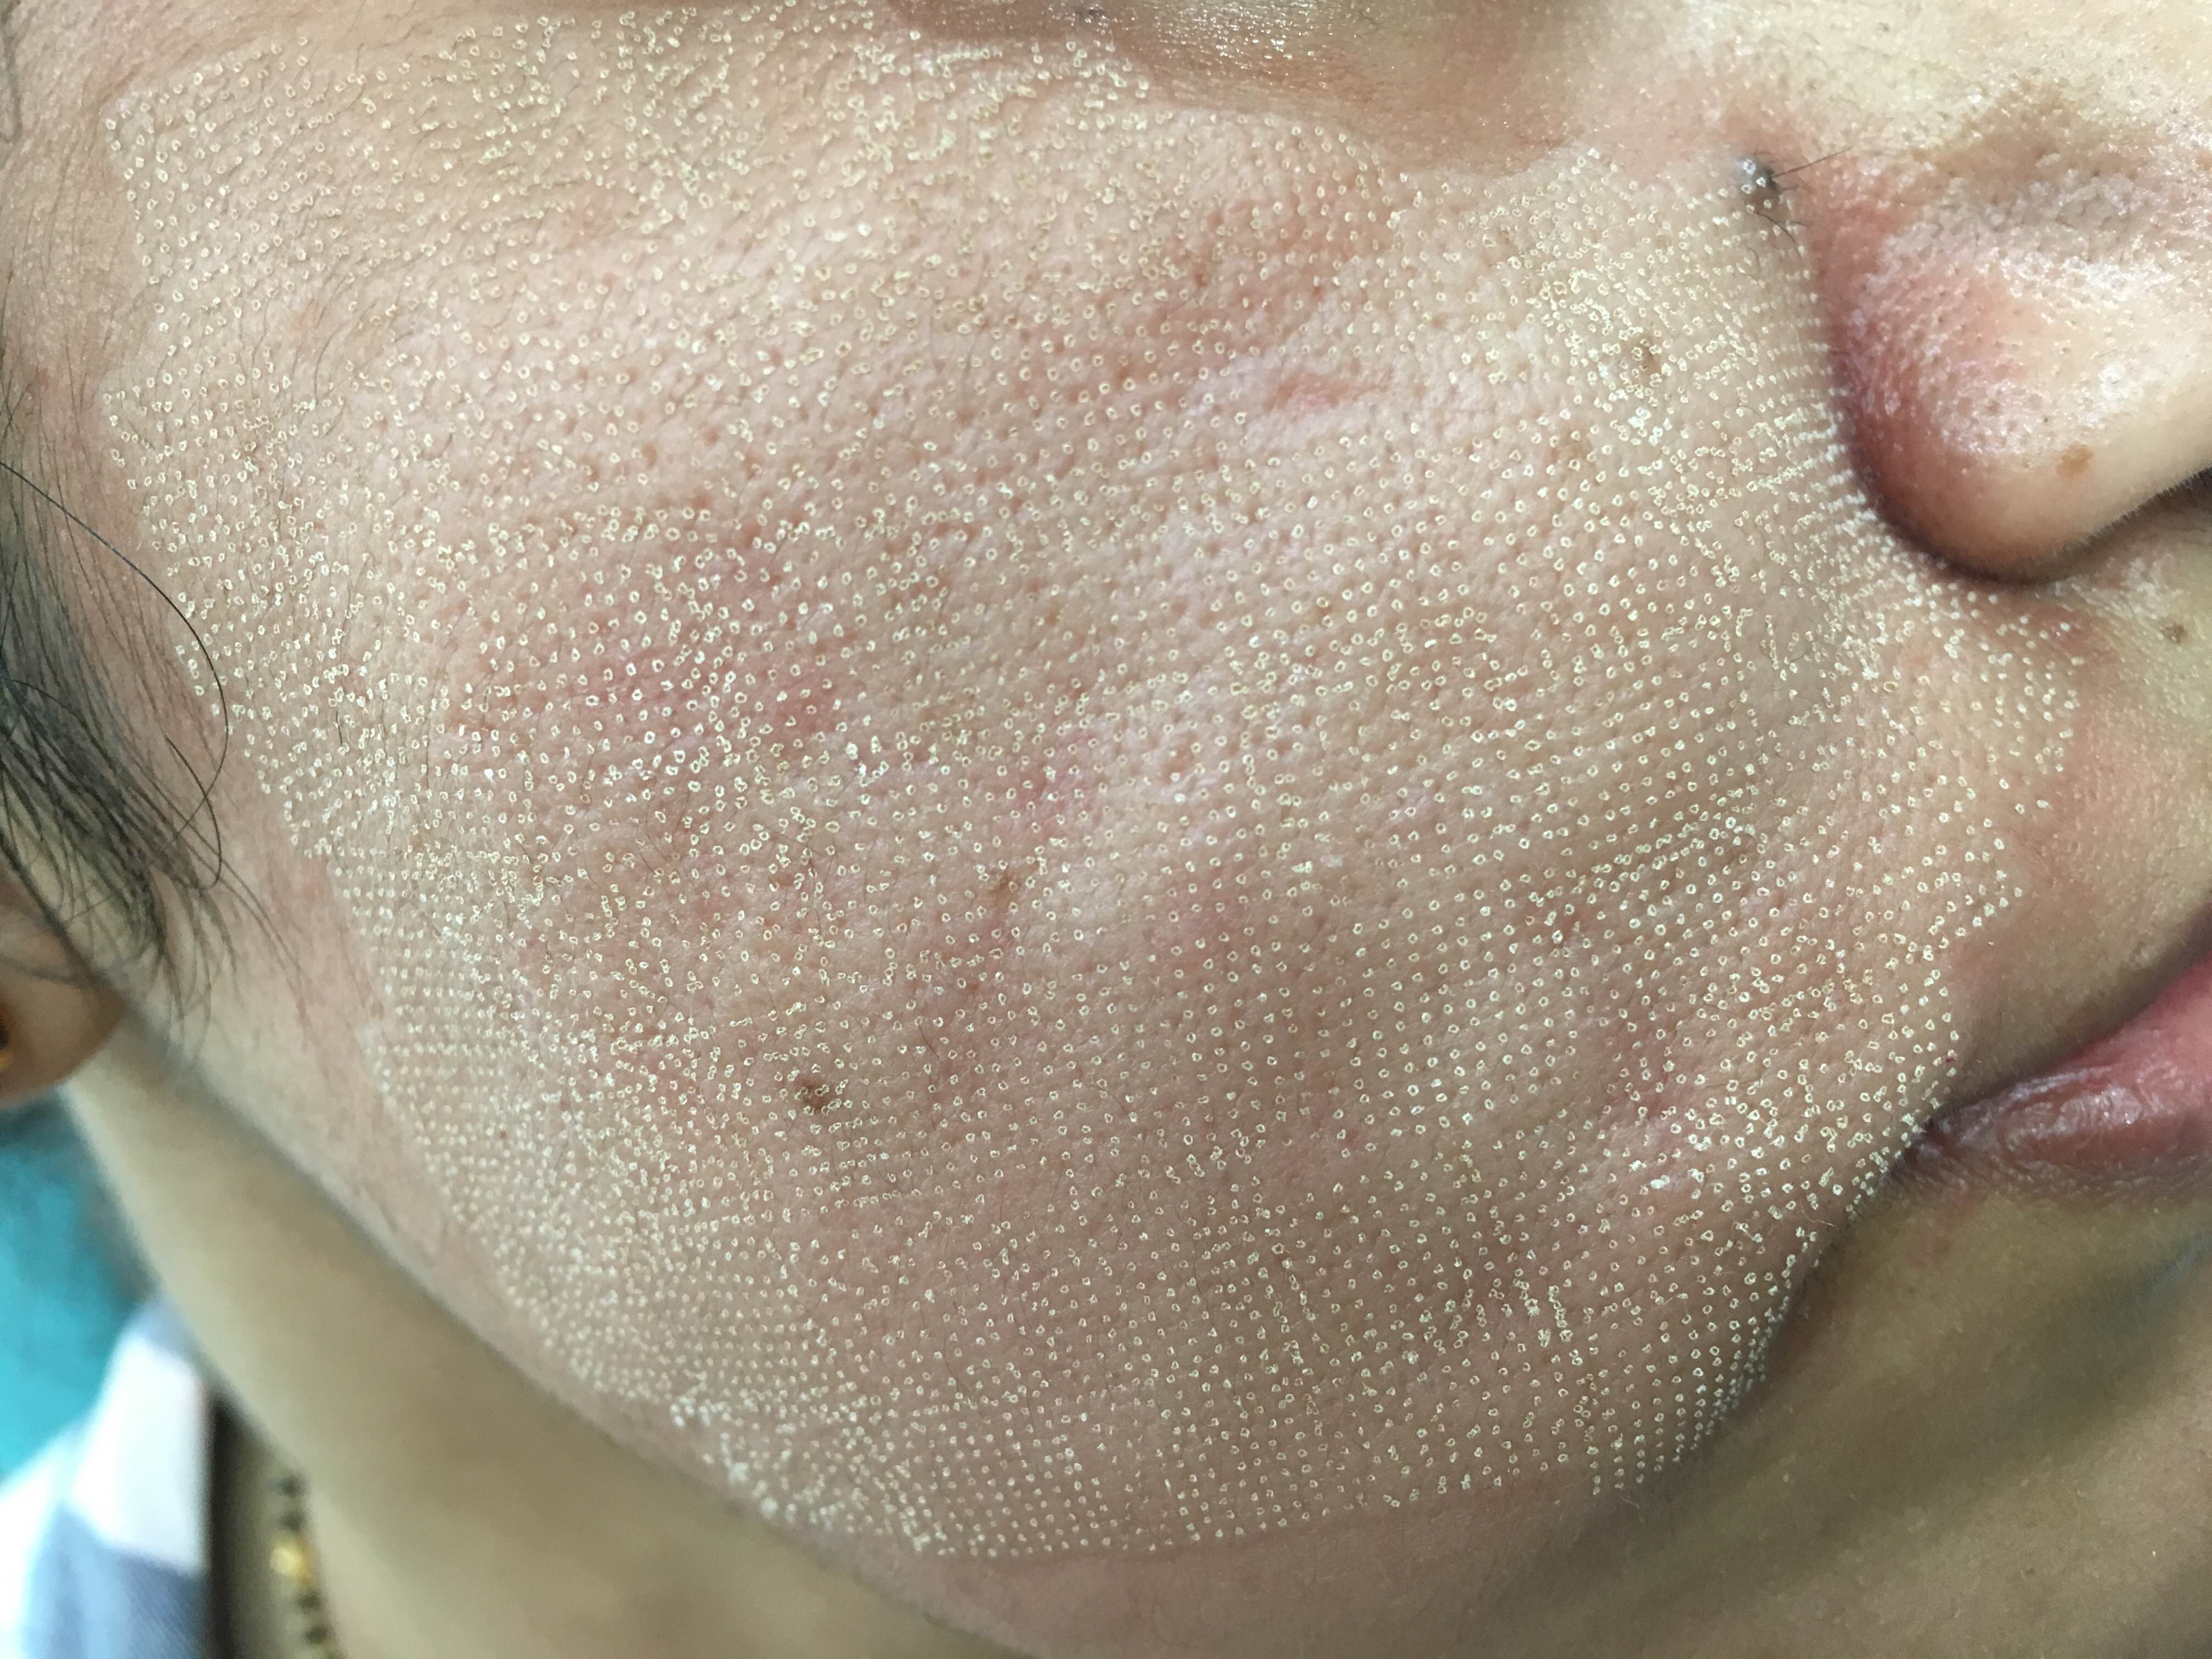 TYPICAL GRID  PATTERN  IMMEDIATELY AFTER FRACTIONAL CO2 LASER TREATMENT:<br/><br/>Dr Ashima Goel <br/>Parisa skin clinic, <br/>SECTOR 15D , CHD<br/>M -9780981403  <br/>www.parisadermatology.com<br/><br/>#fractionalCO2laser #laser #antiaging ##doctor #hope #prevent #care #protect #parisa #skinclinic #skinsolution #happiness #parisa #laser #cosmetic #chandigarh #skincare #dermatologist #BestDermatologistInChandigarh #bestdermatologistchandigarh<br/>#chandigarh #mohali #citybeautiful